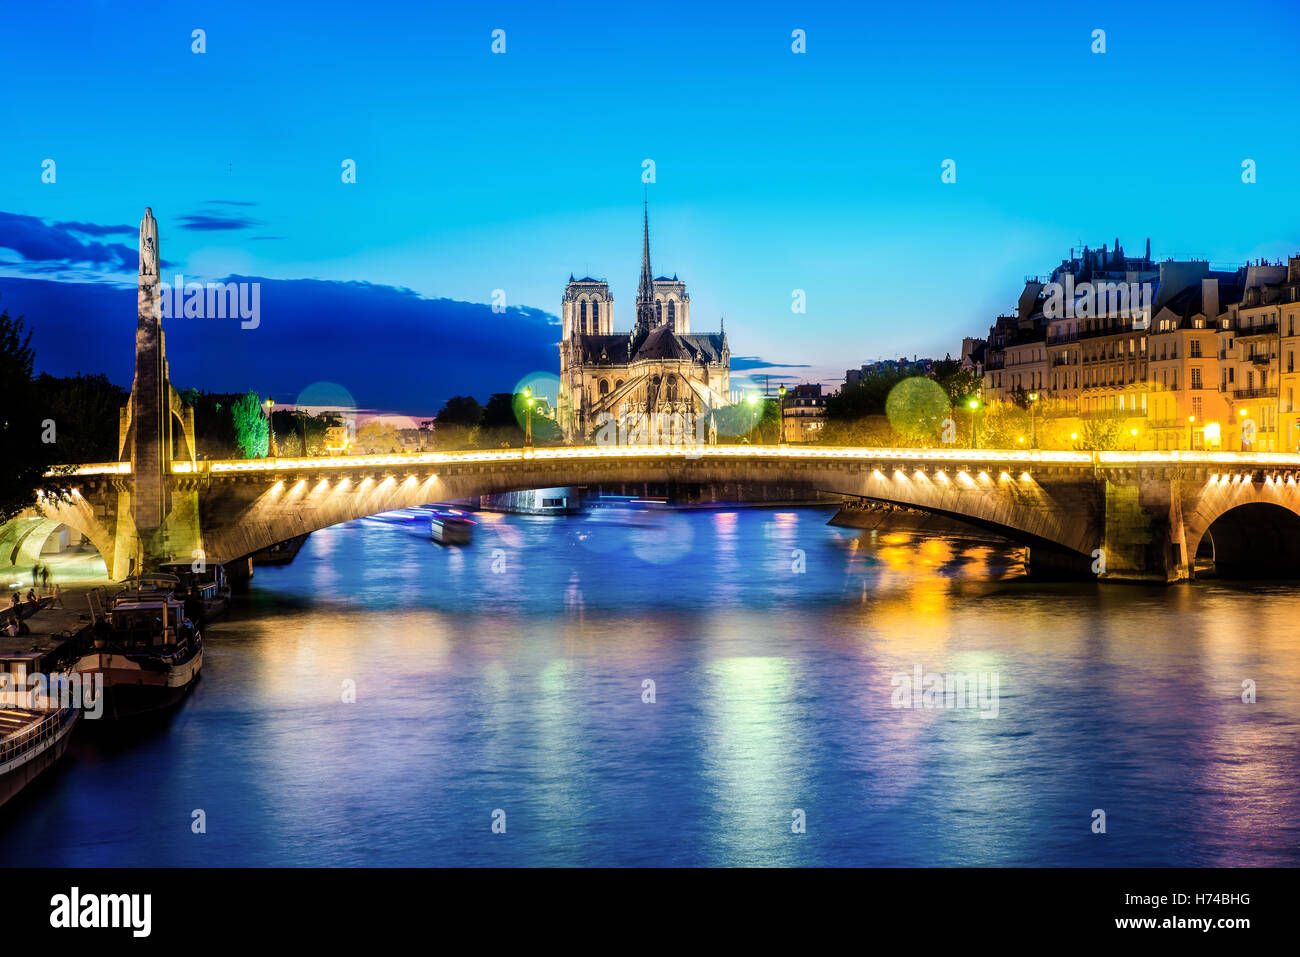 Notre dame de Paris at night and the seine river France in the city of Paris in France - Stock Image